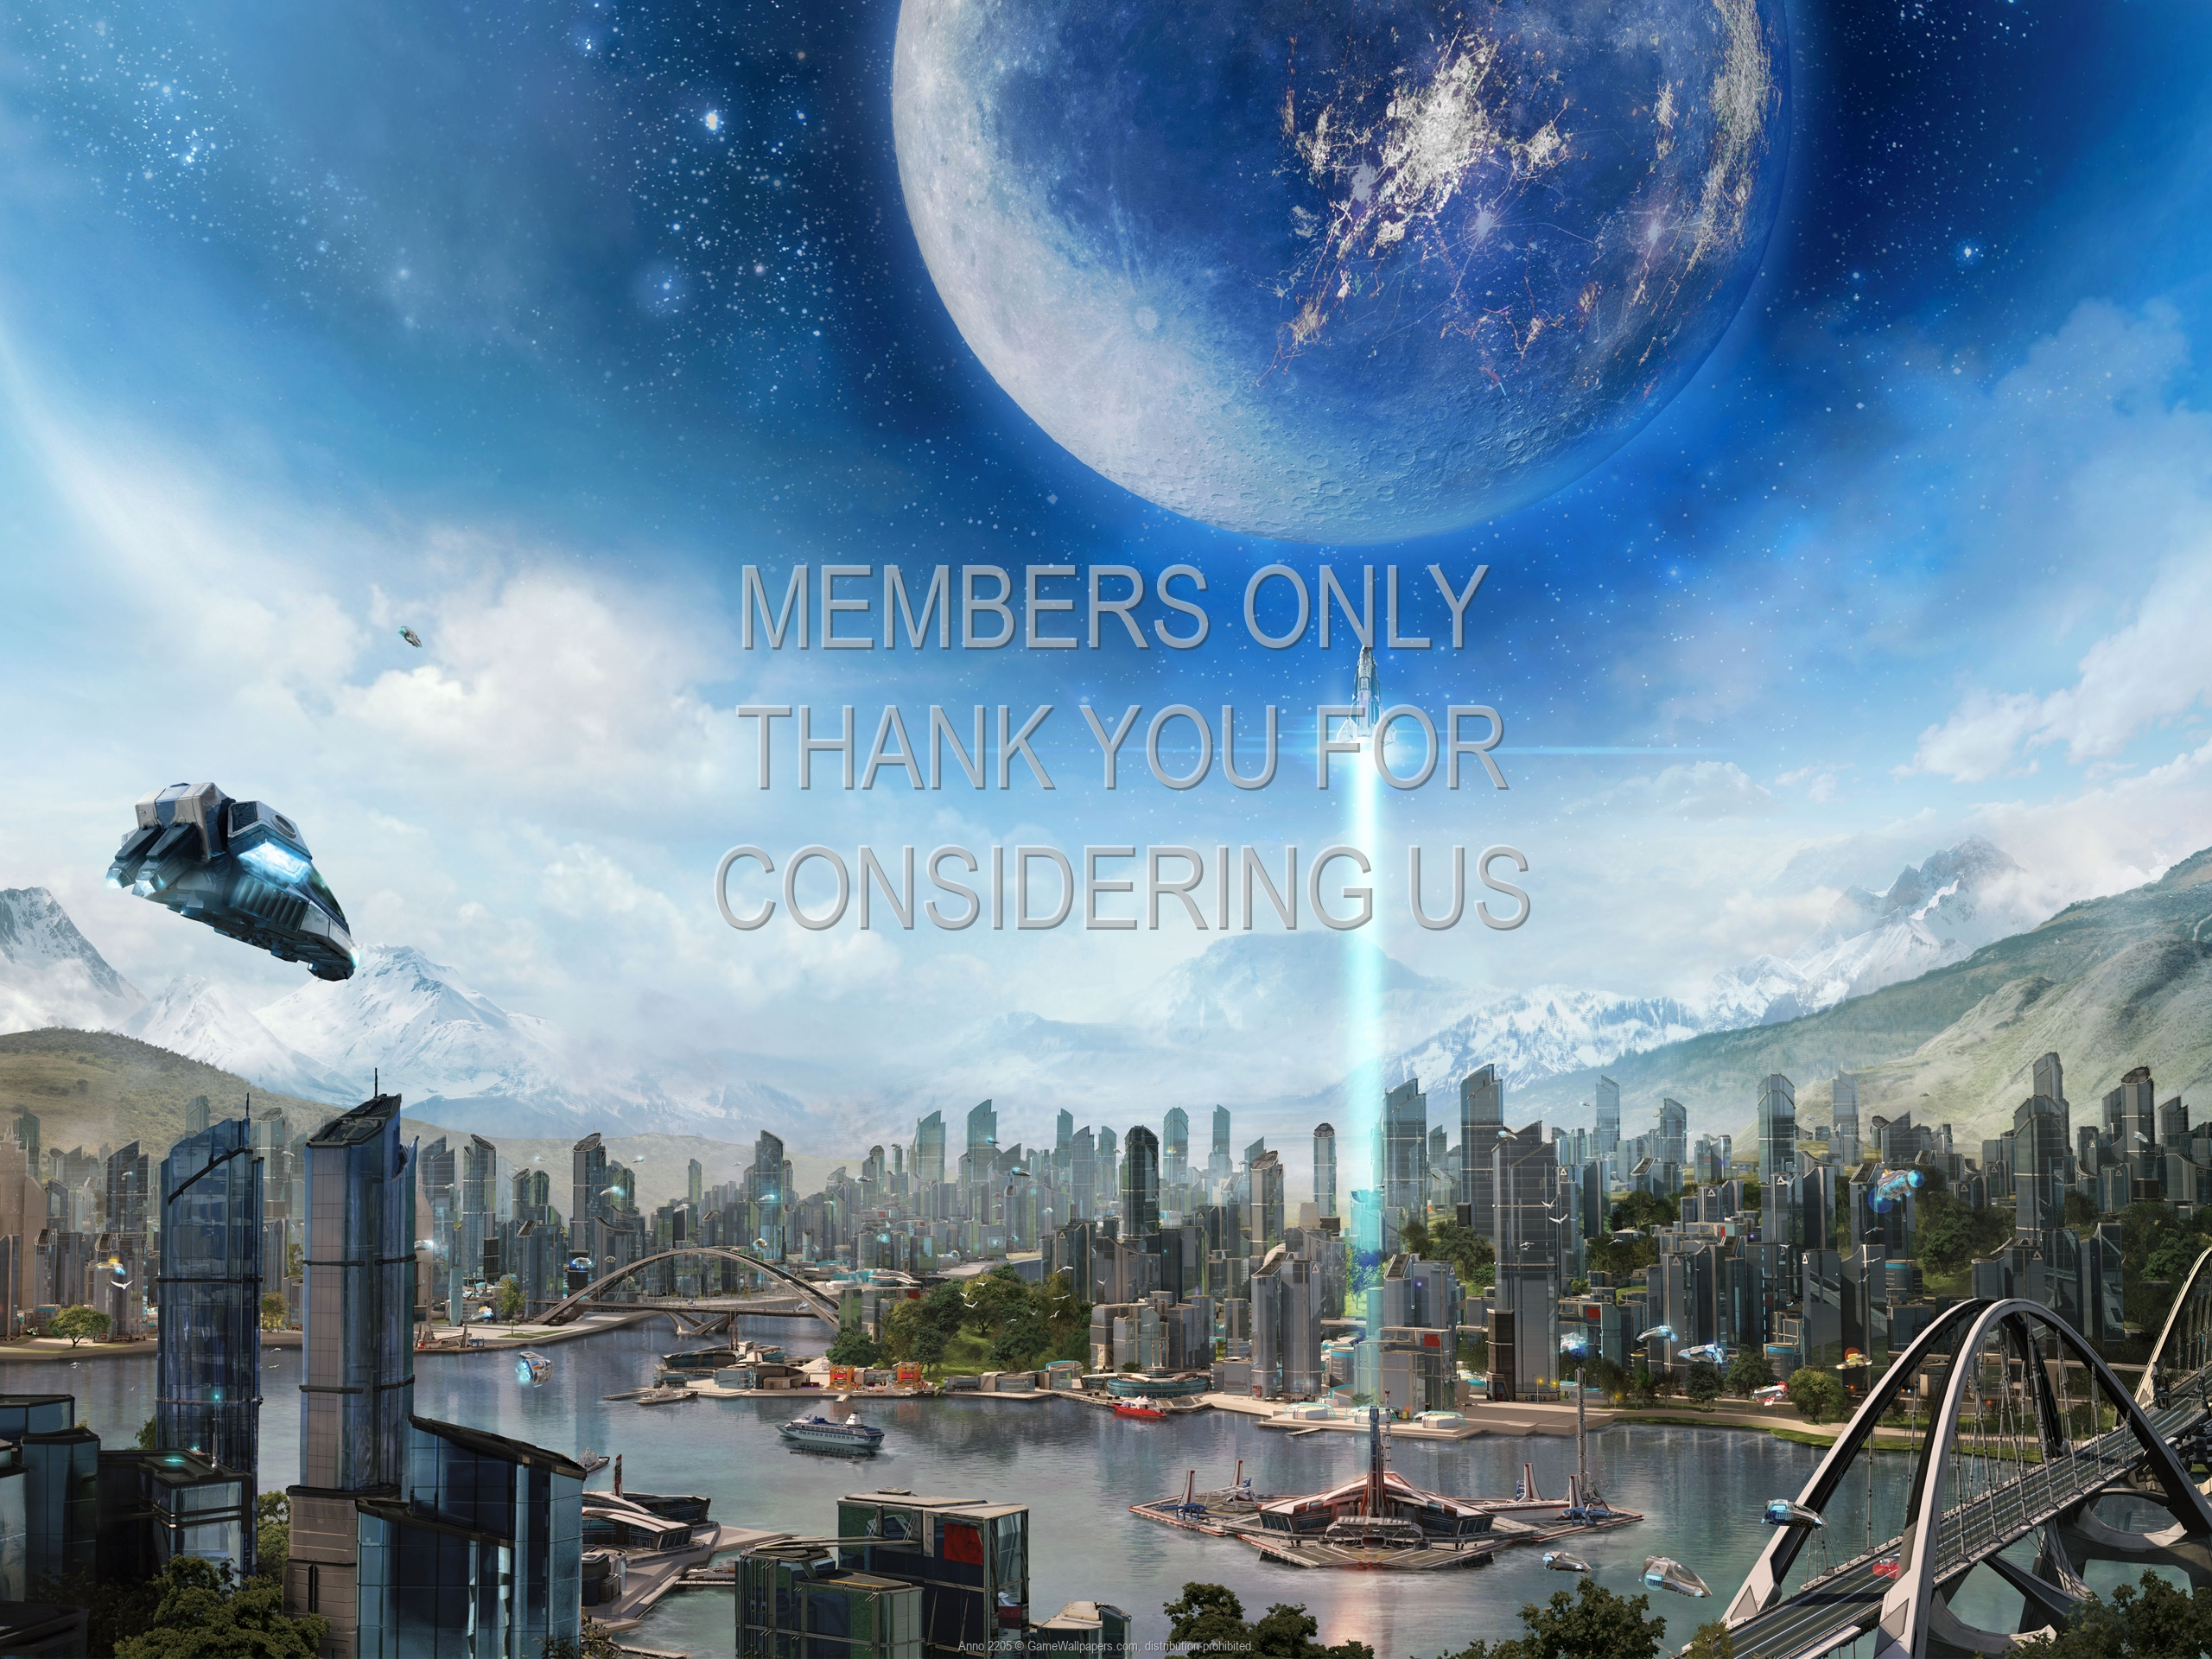 Anno 2205 1920x1080 Mobile wallpaper or background 01